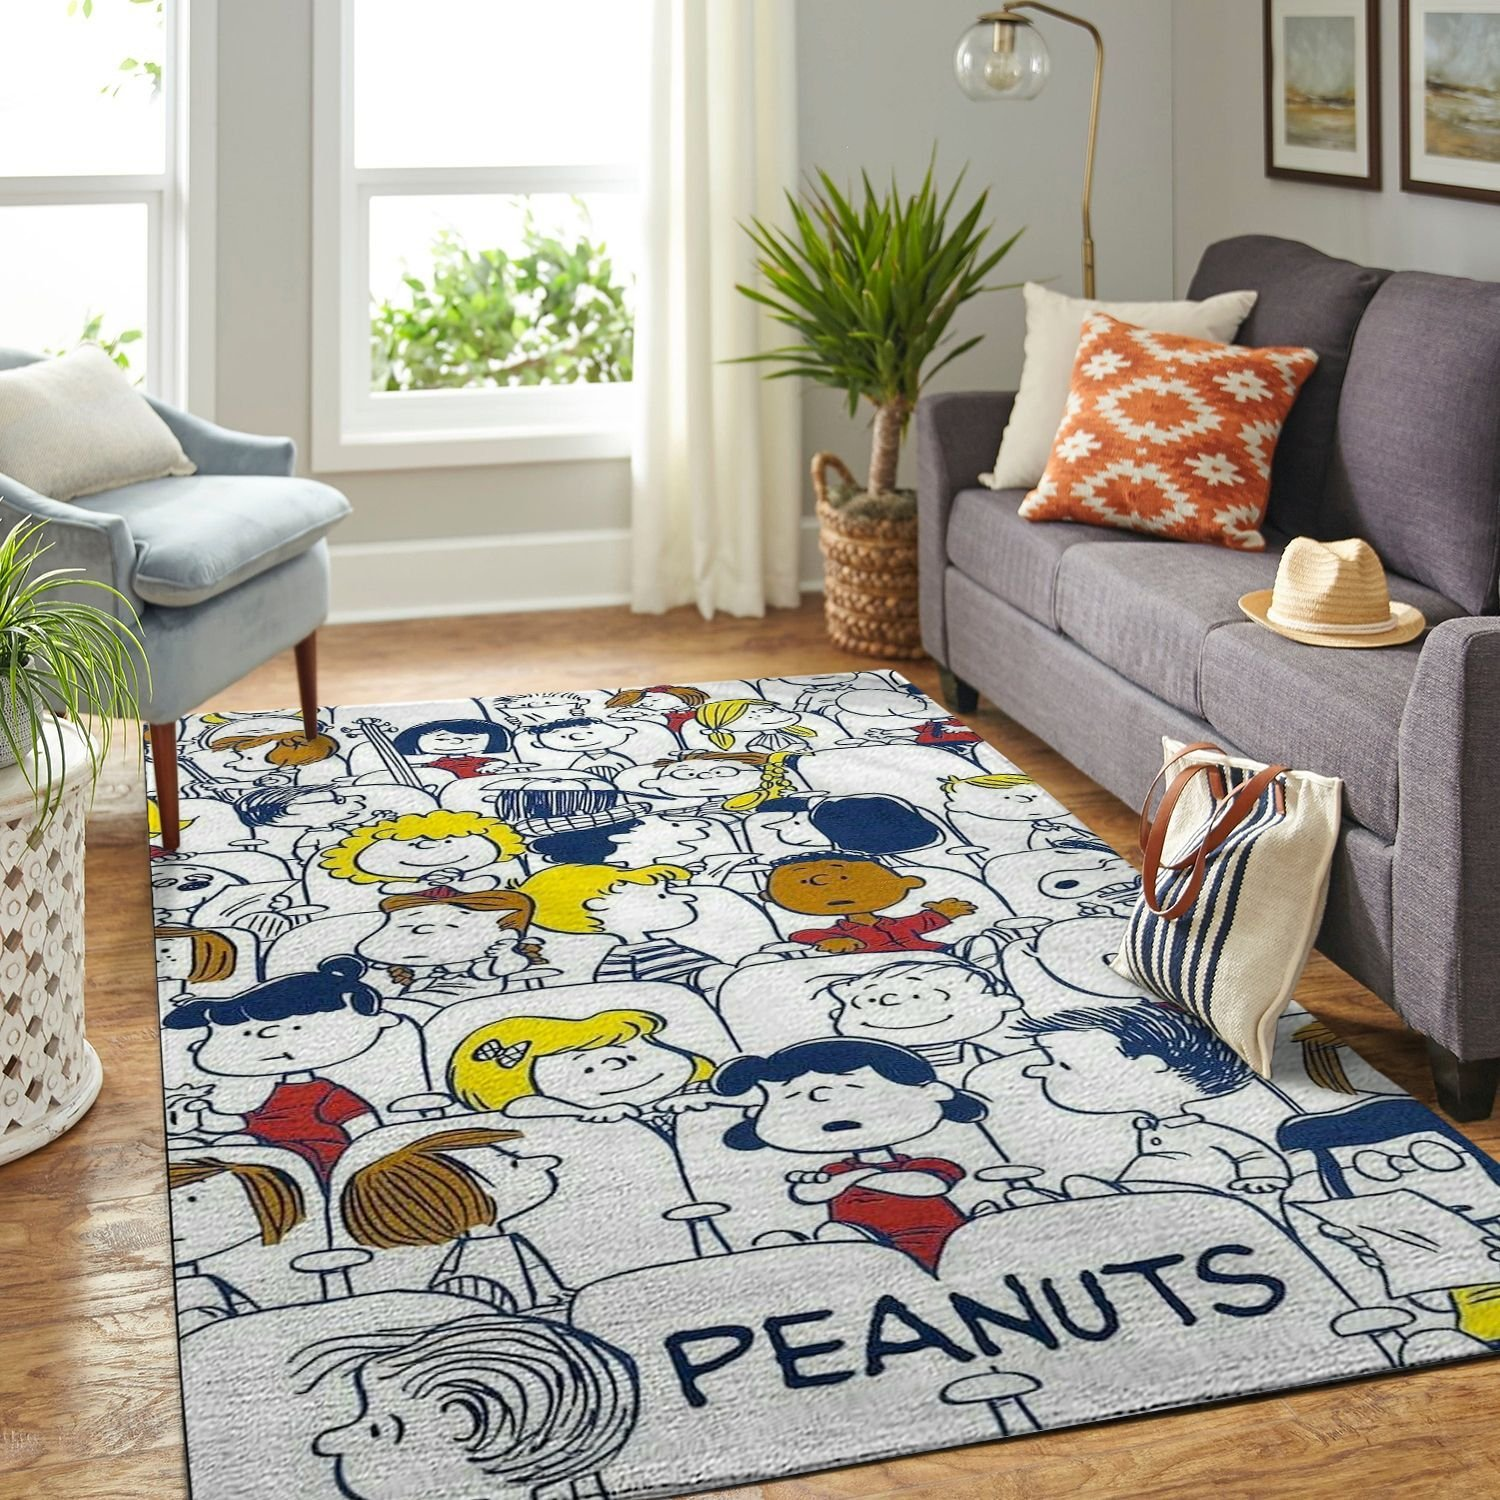 Amazon Snoopy Dog And Peanuts Comic Living Room Area No6550 Rug